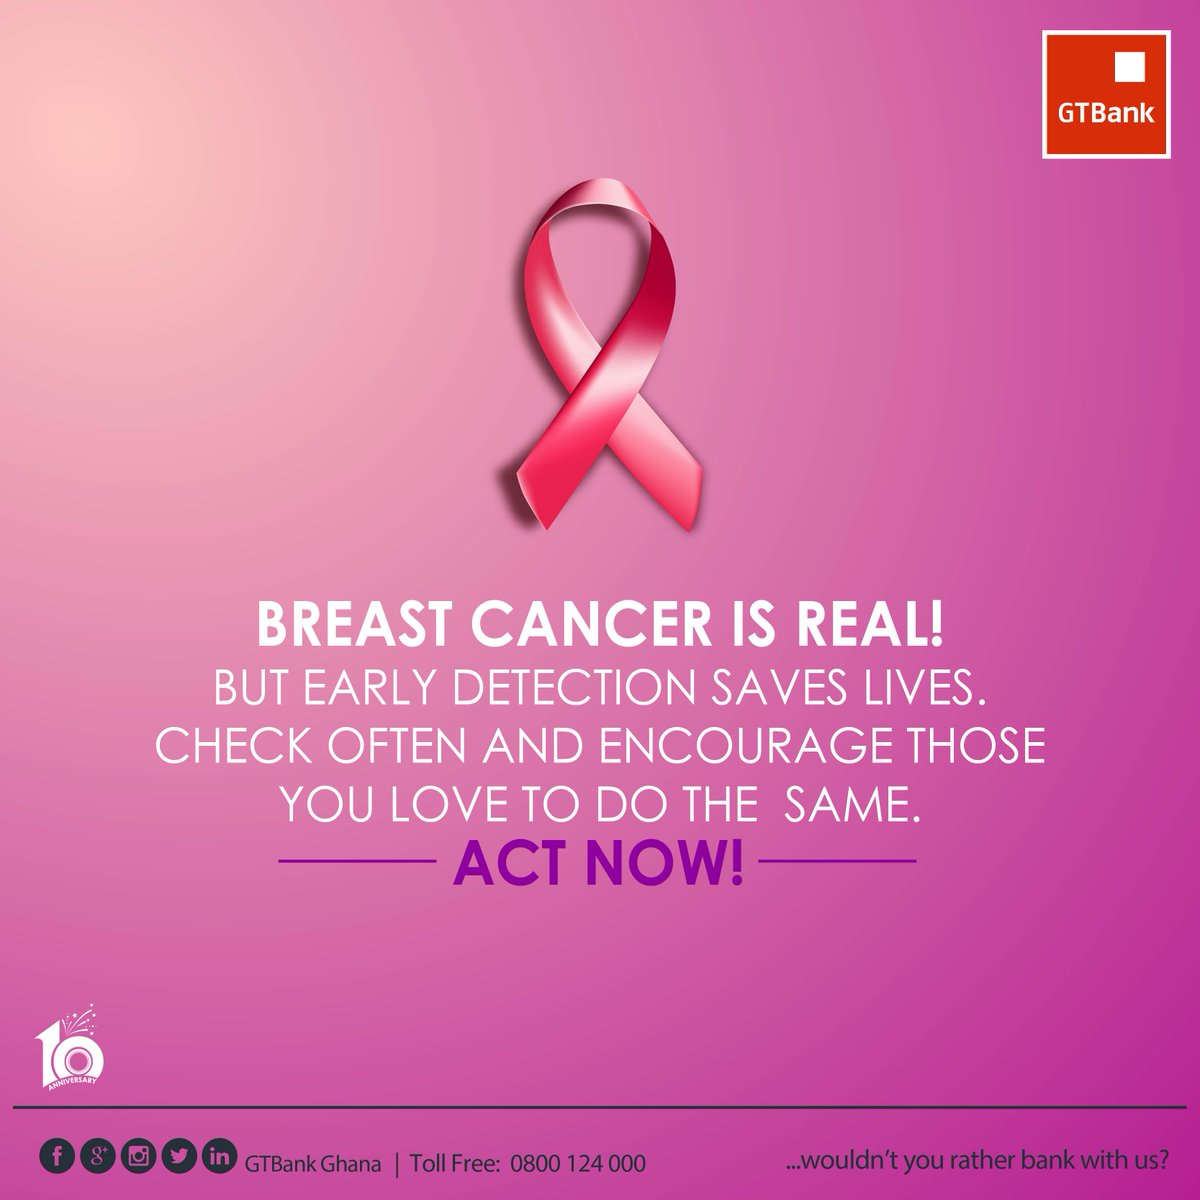 Gtbank Ghana Ltd On Twitter Breast Cancer Is Real But Early Detection Can Save Lives Check Often Encourage Those You Love To Do The Same Breastcancerawarenessmonth Https T Co Gwwlrb2bei